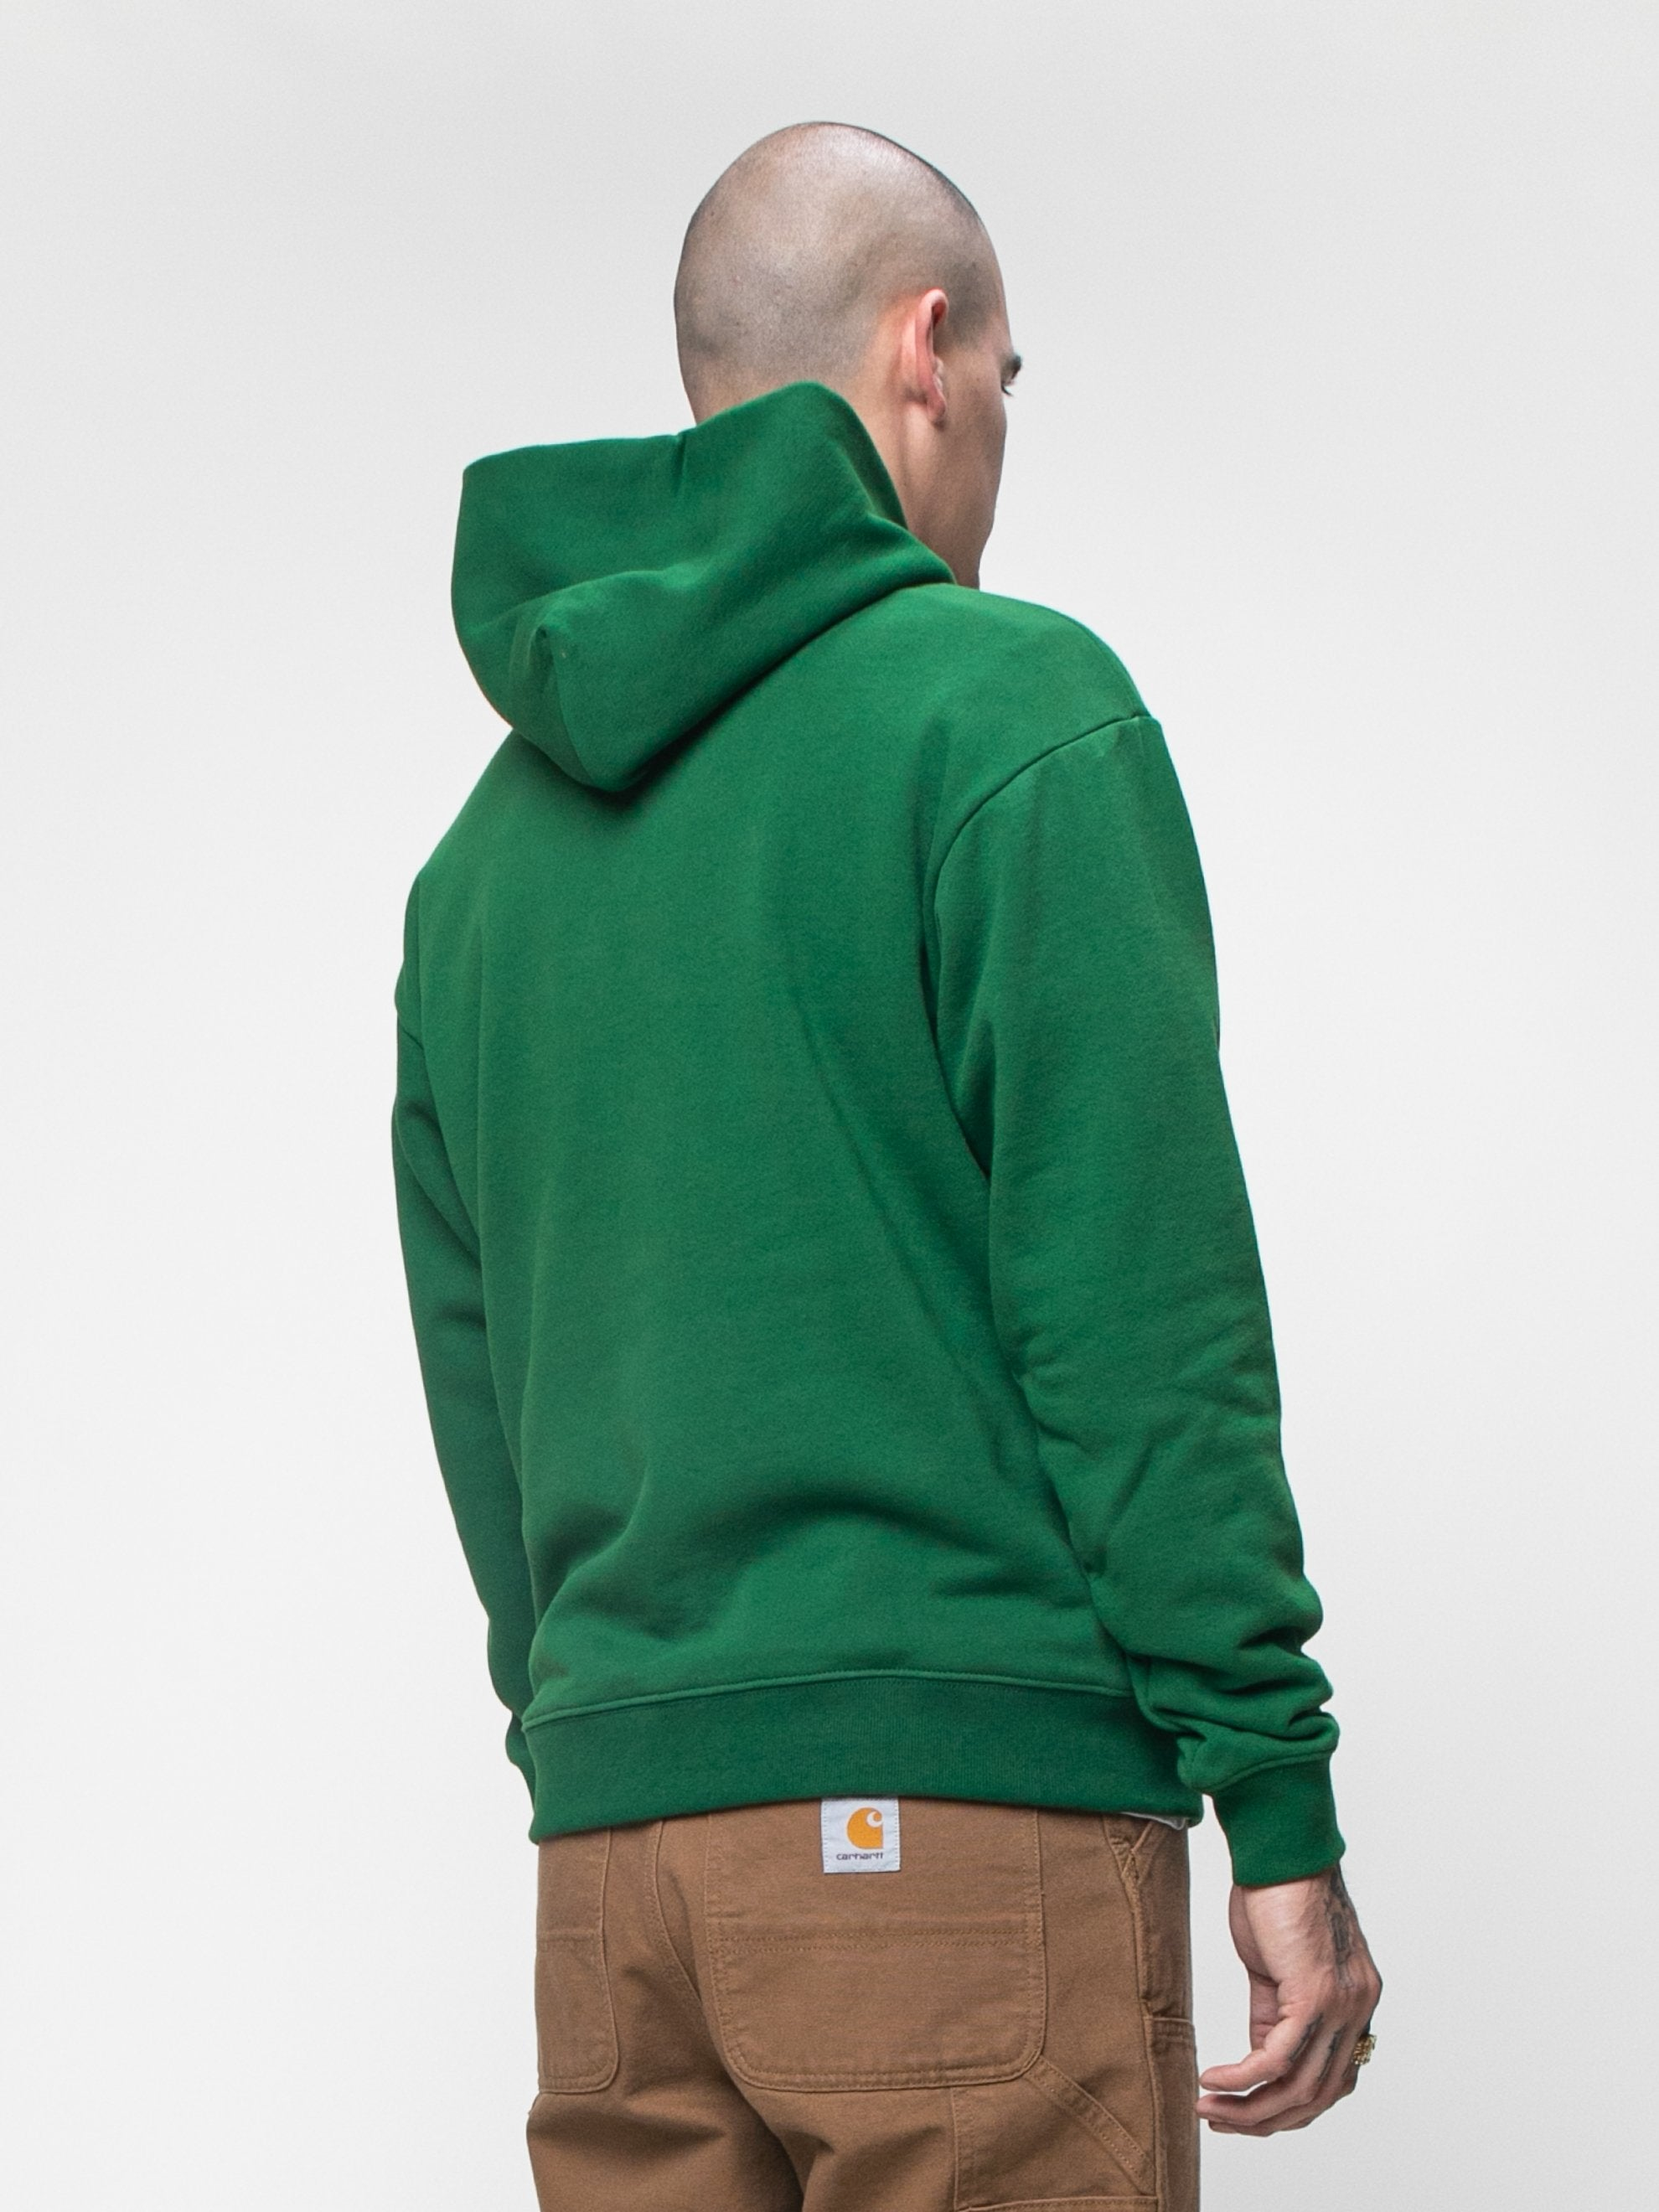 Green CPFM x Eco Mother Earth Hooded Sweatshirt 5